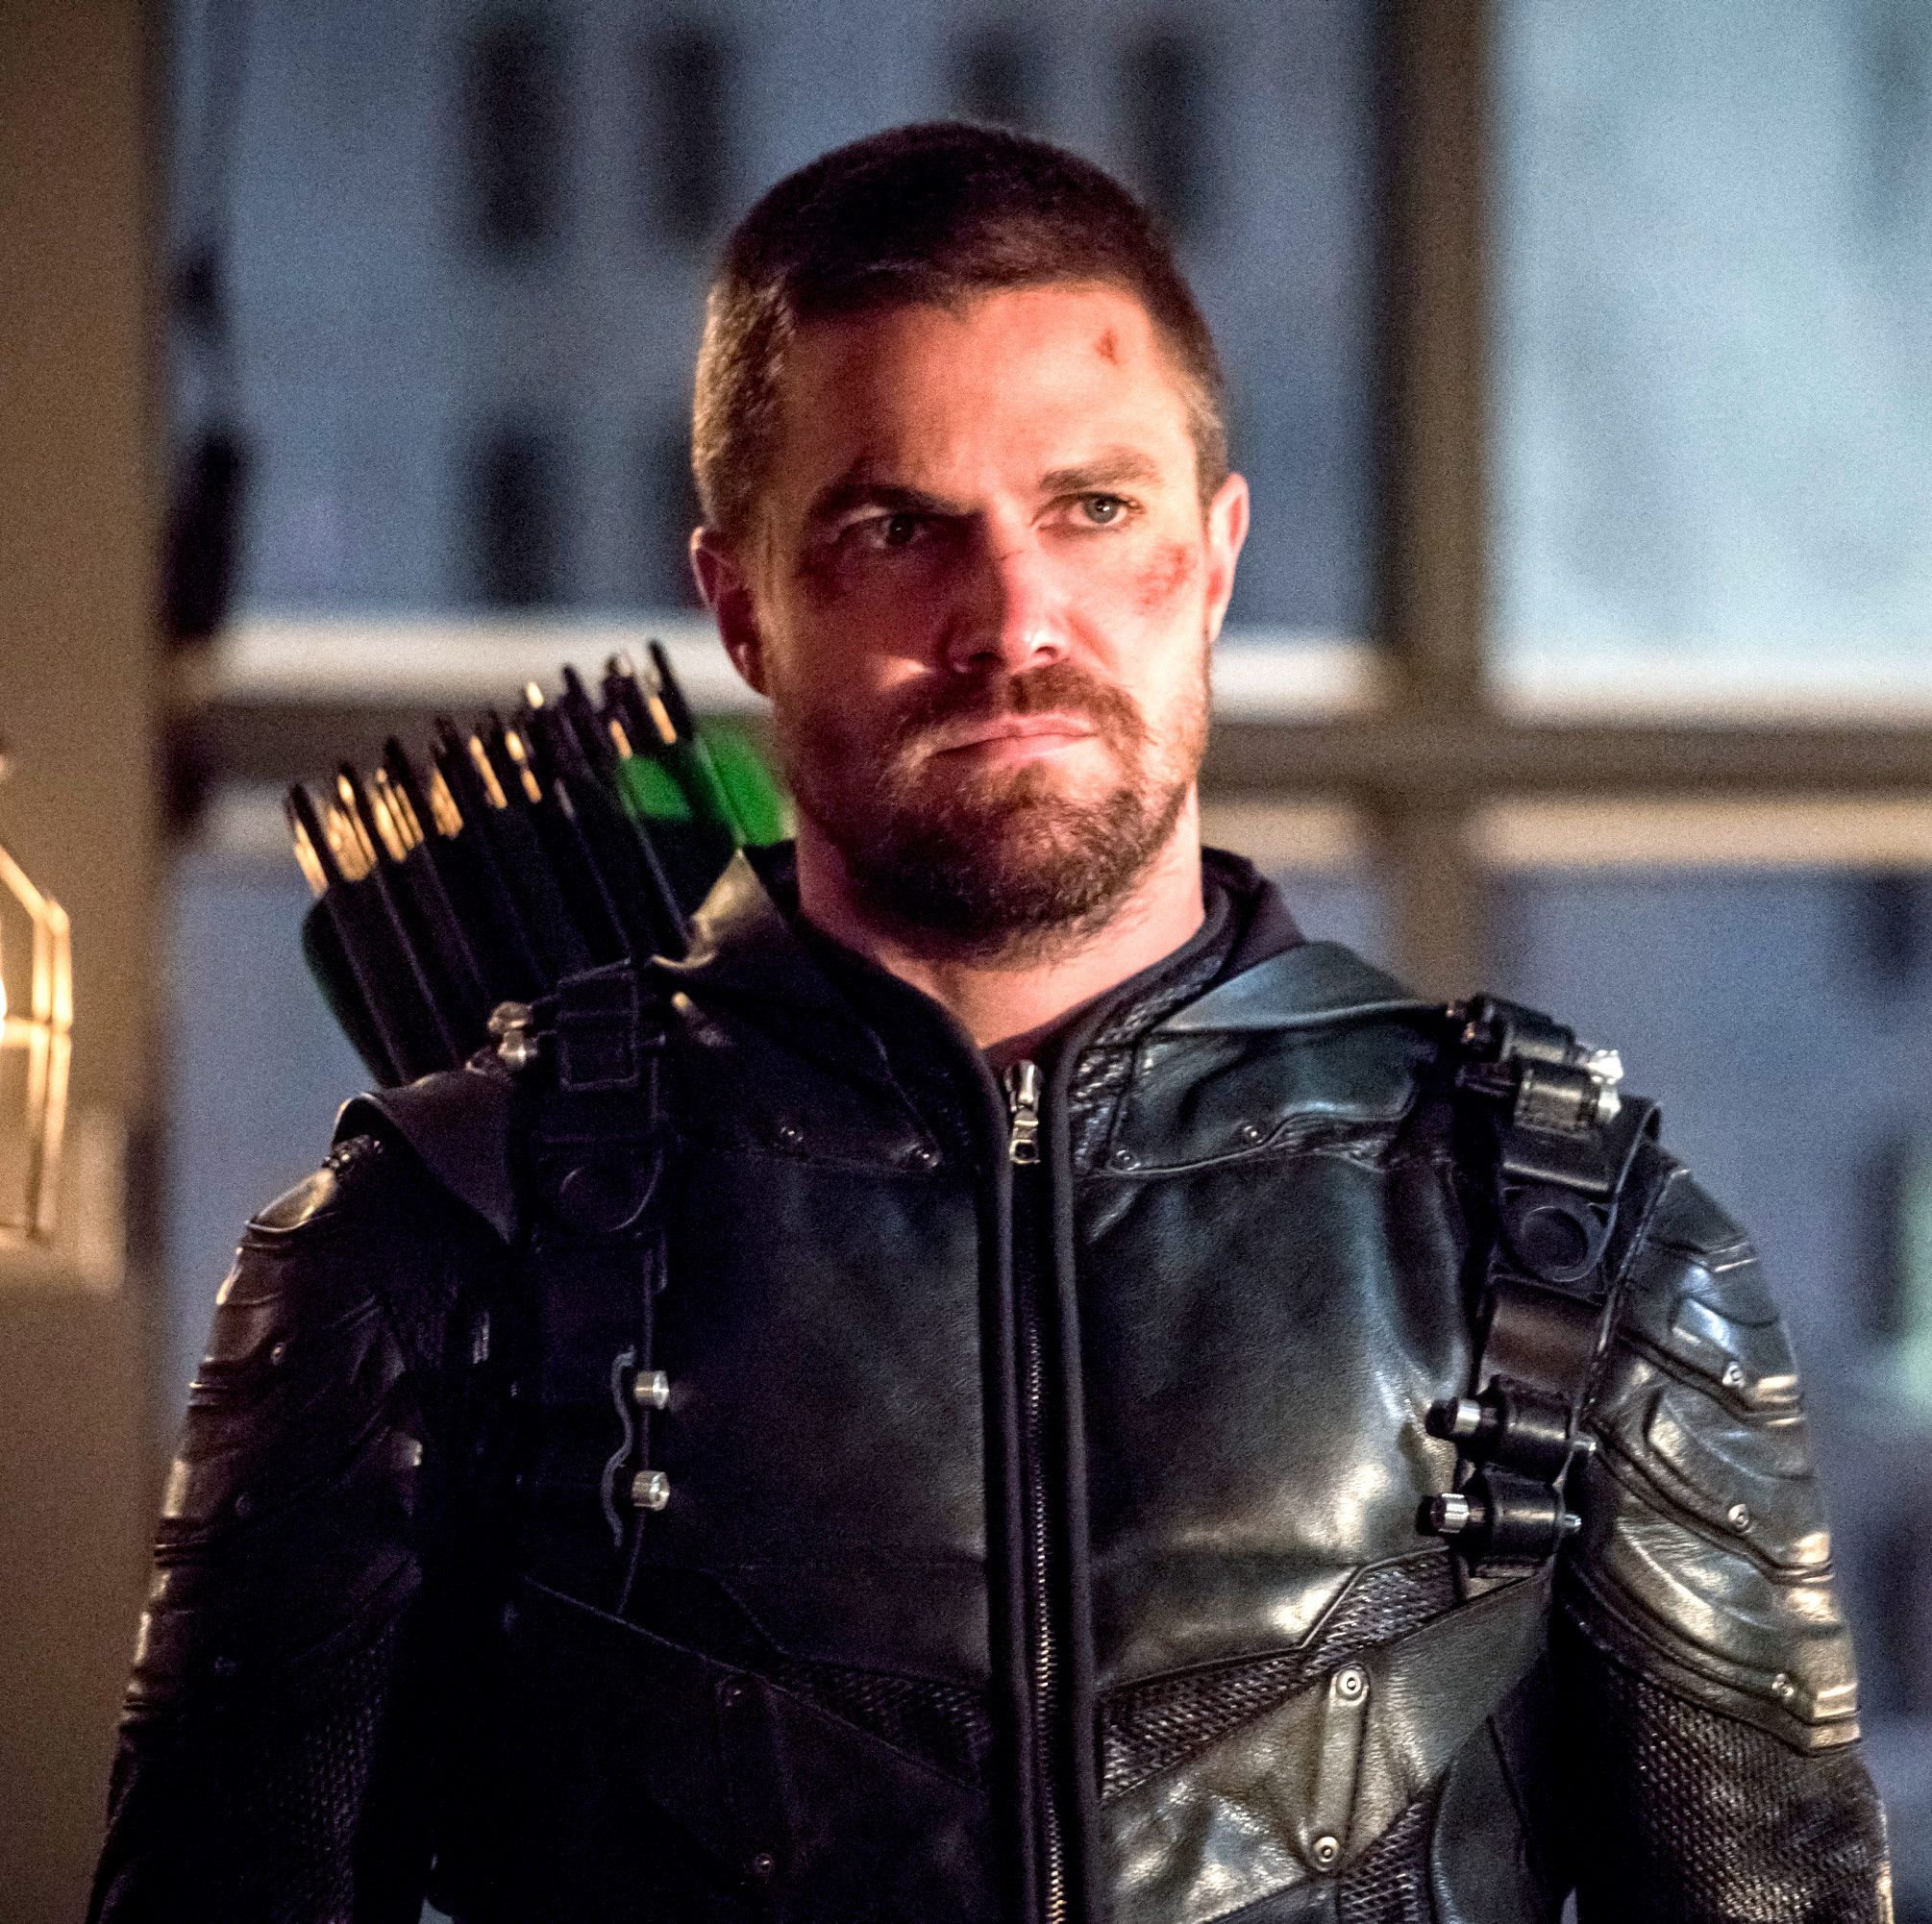 """Arrow's Stephen Amell on not being in DC's movies: """"Why would I wanna be?"""""""